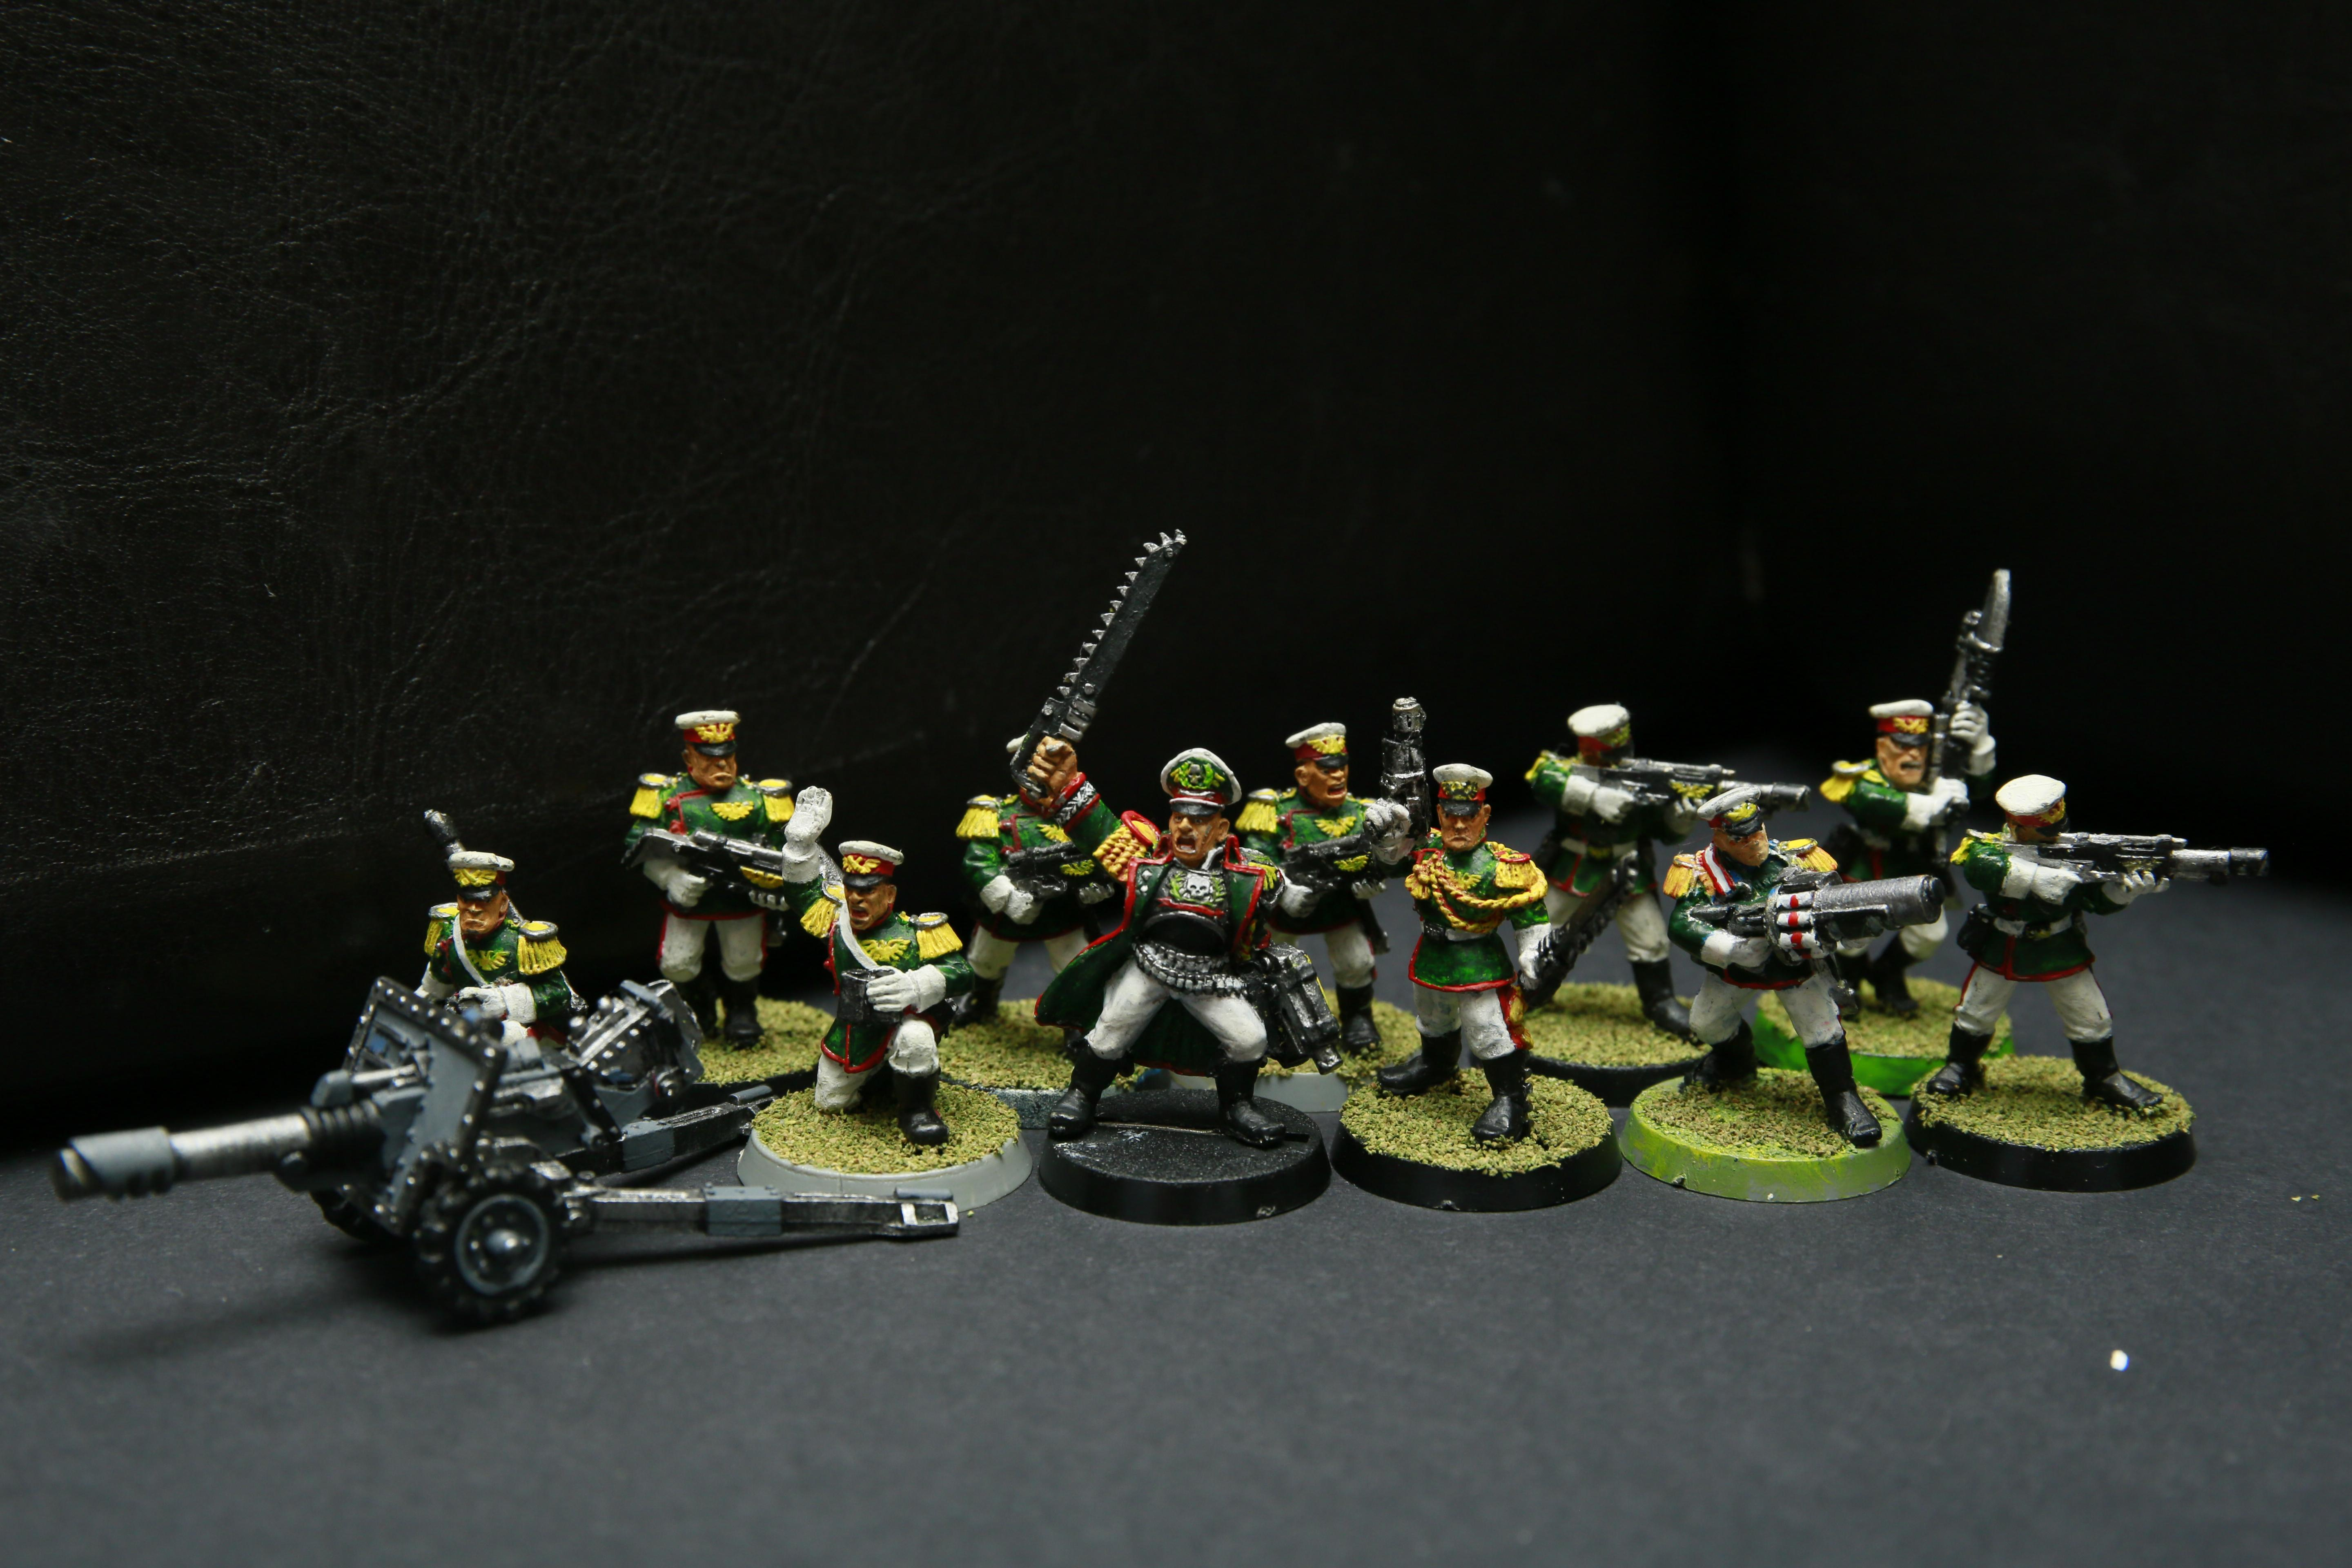 2nd Edition, Astra Militarum, Imperial Guard, Infantry Squad, Mordian Iron Guard, Warhammer 40,000